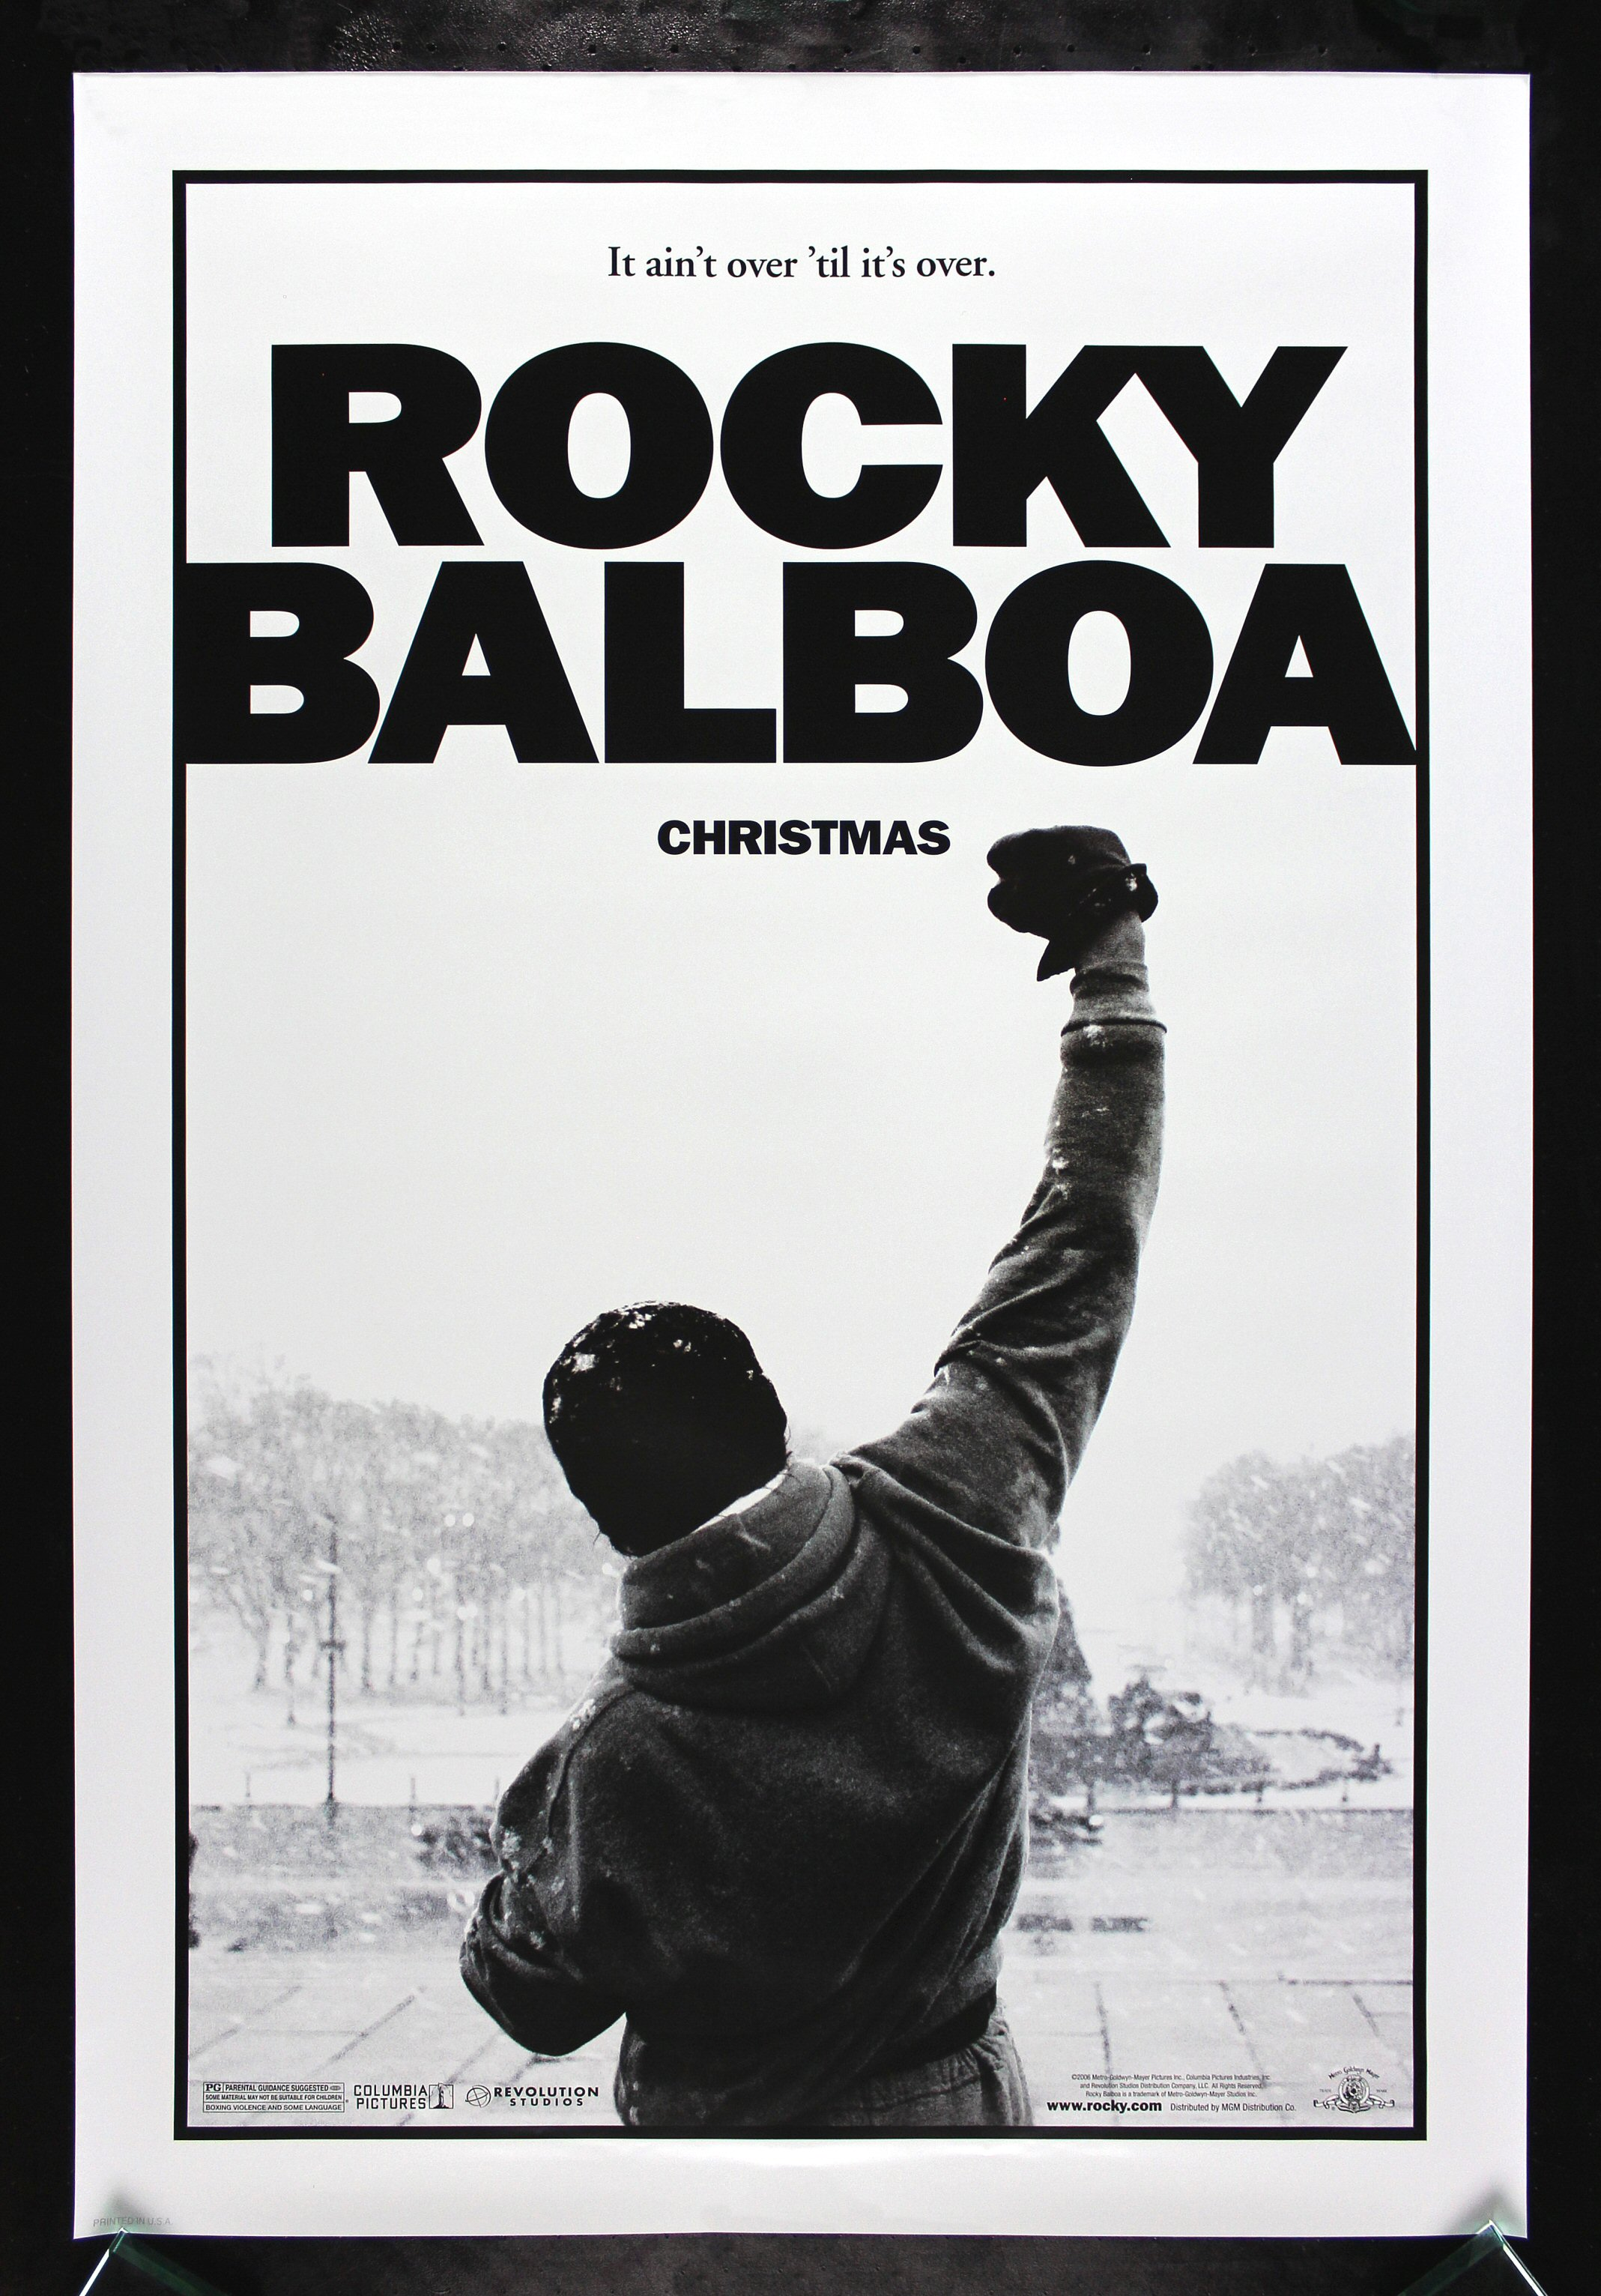 rocky balboa cinemasterpieces original movie poster